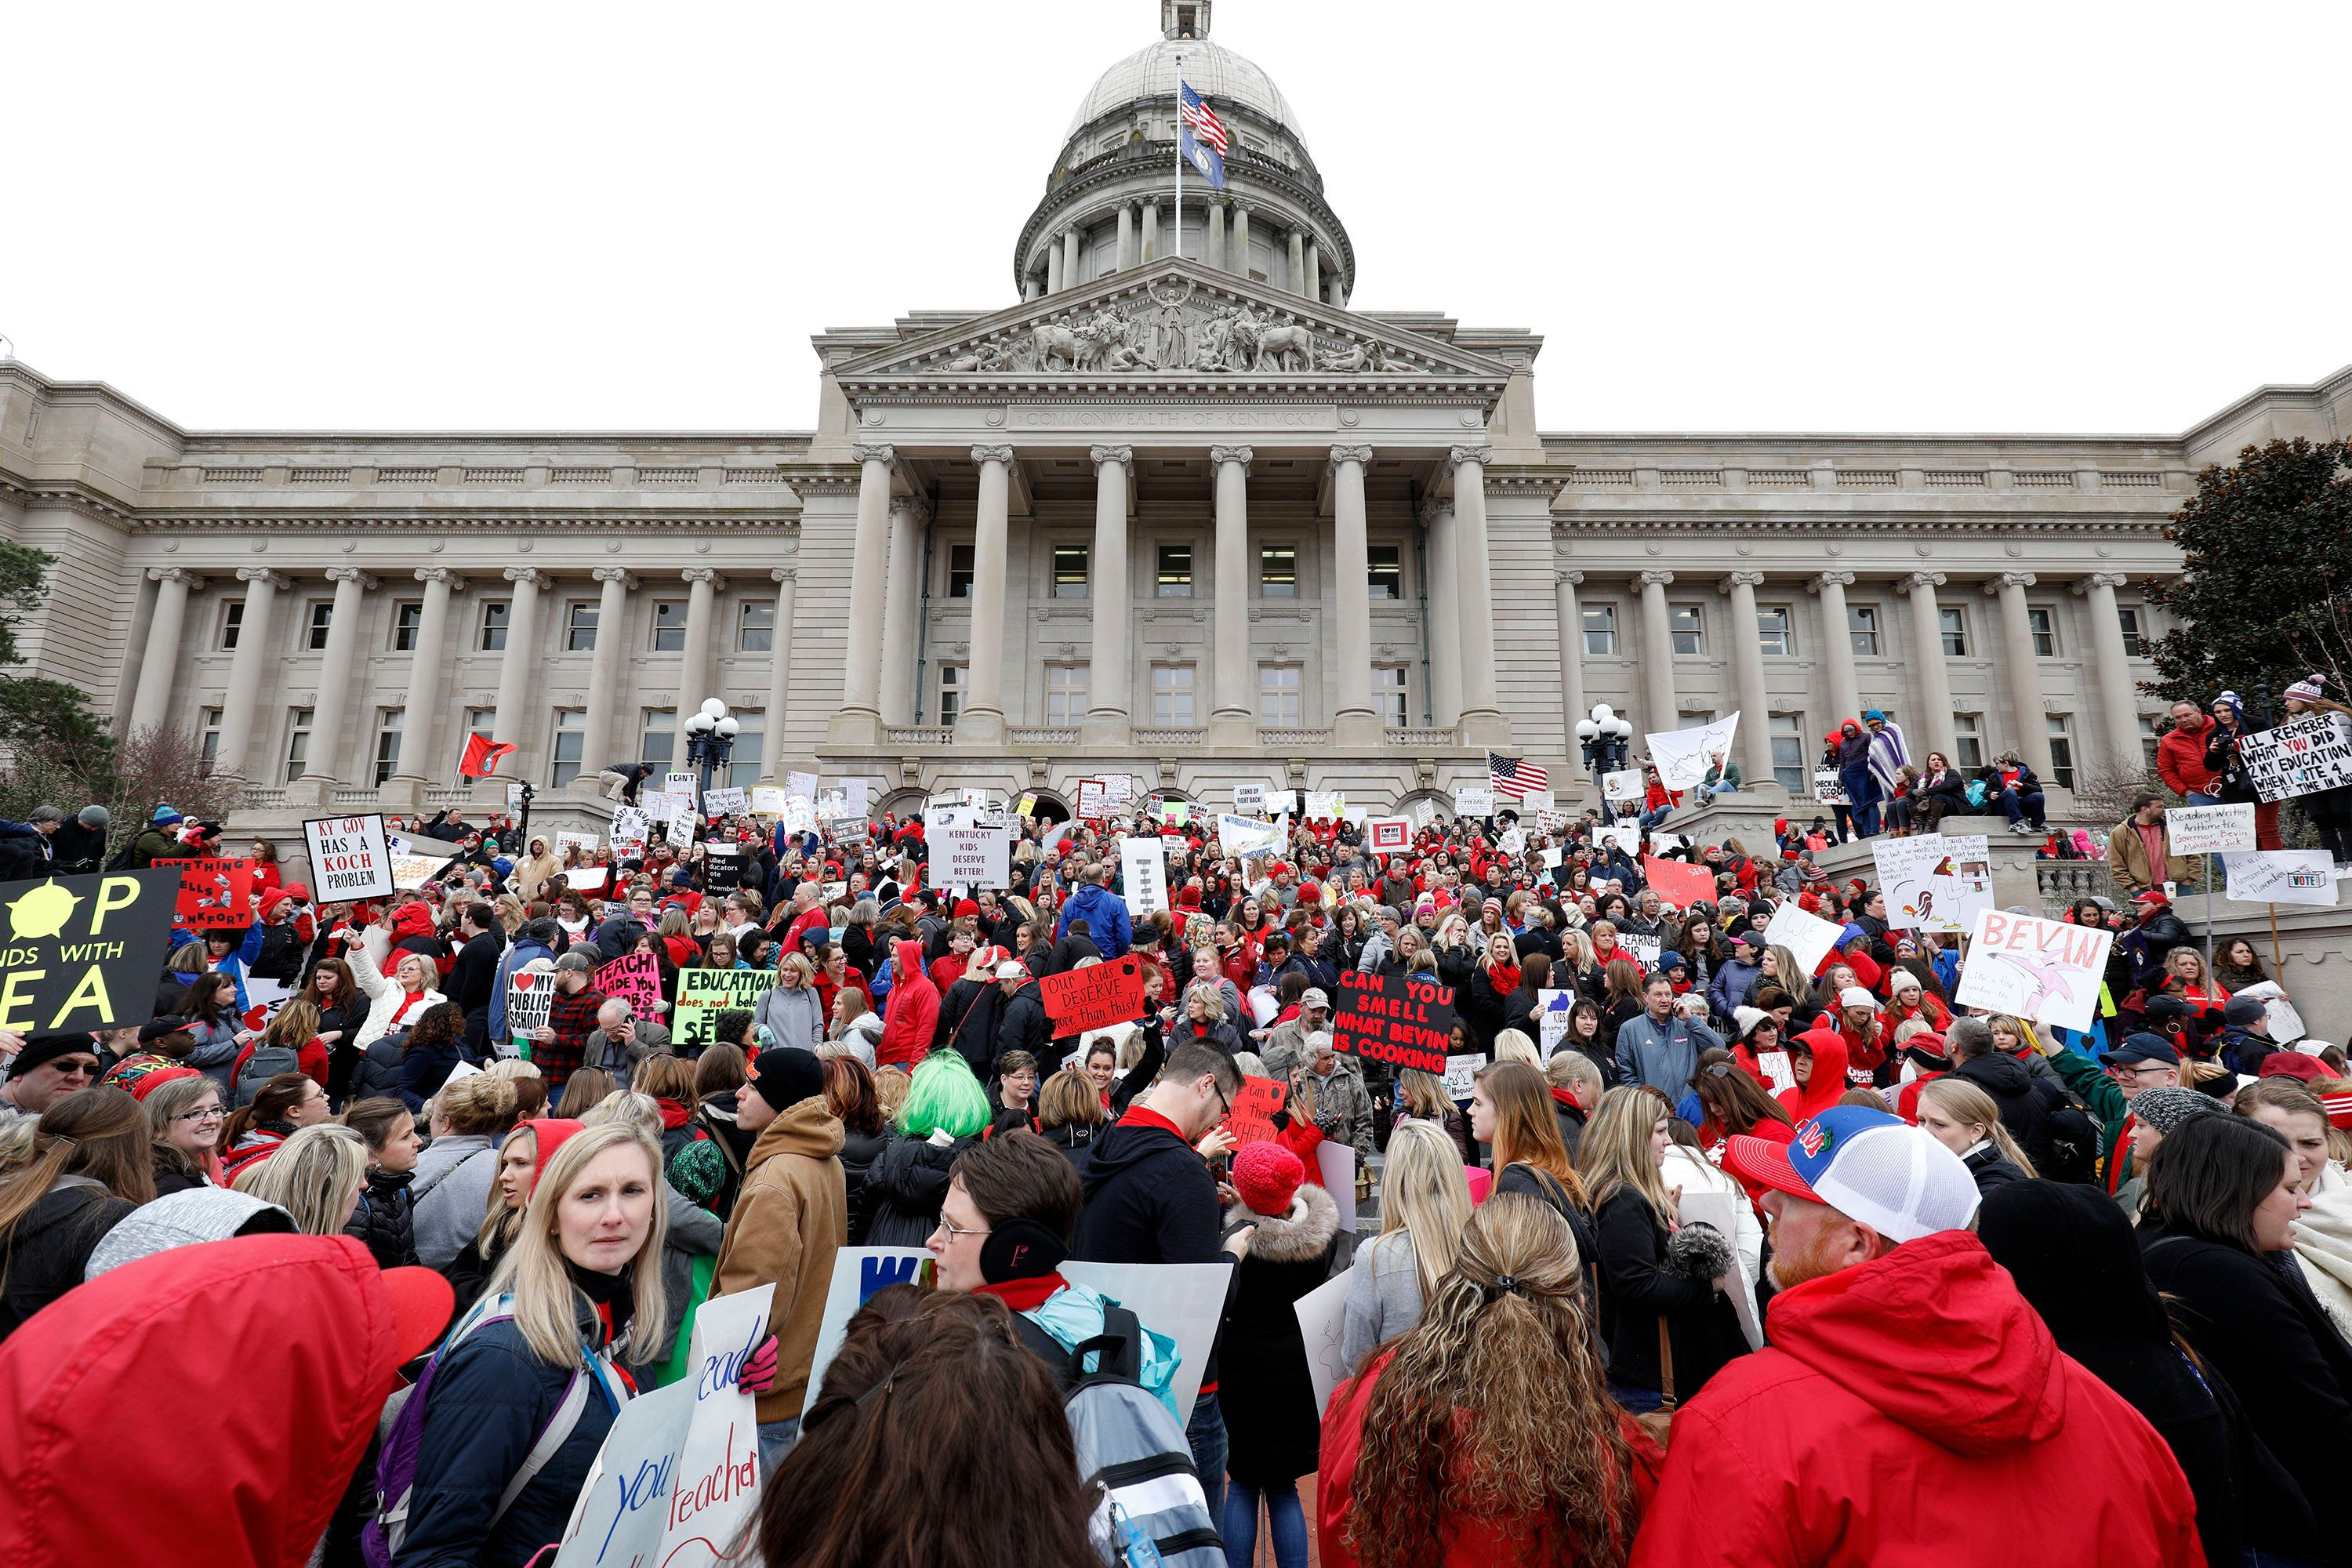 FRANKFORT, KY - APRIL 2: Thousands of public school teachers and their supporters protest against a pension reform bill at the Kentucky State Capitol April 2, 2018 in Frankfort, Kentucky. The teachers are calling for higher wages and are demanding that Kentucky Gov. Matt Bevin veto a bill that overhauls their pension plan. (Photo by Bill Pugliano/Getty Images)